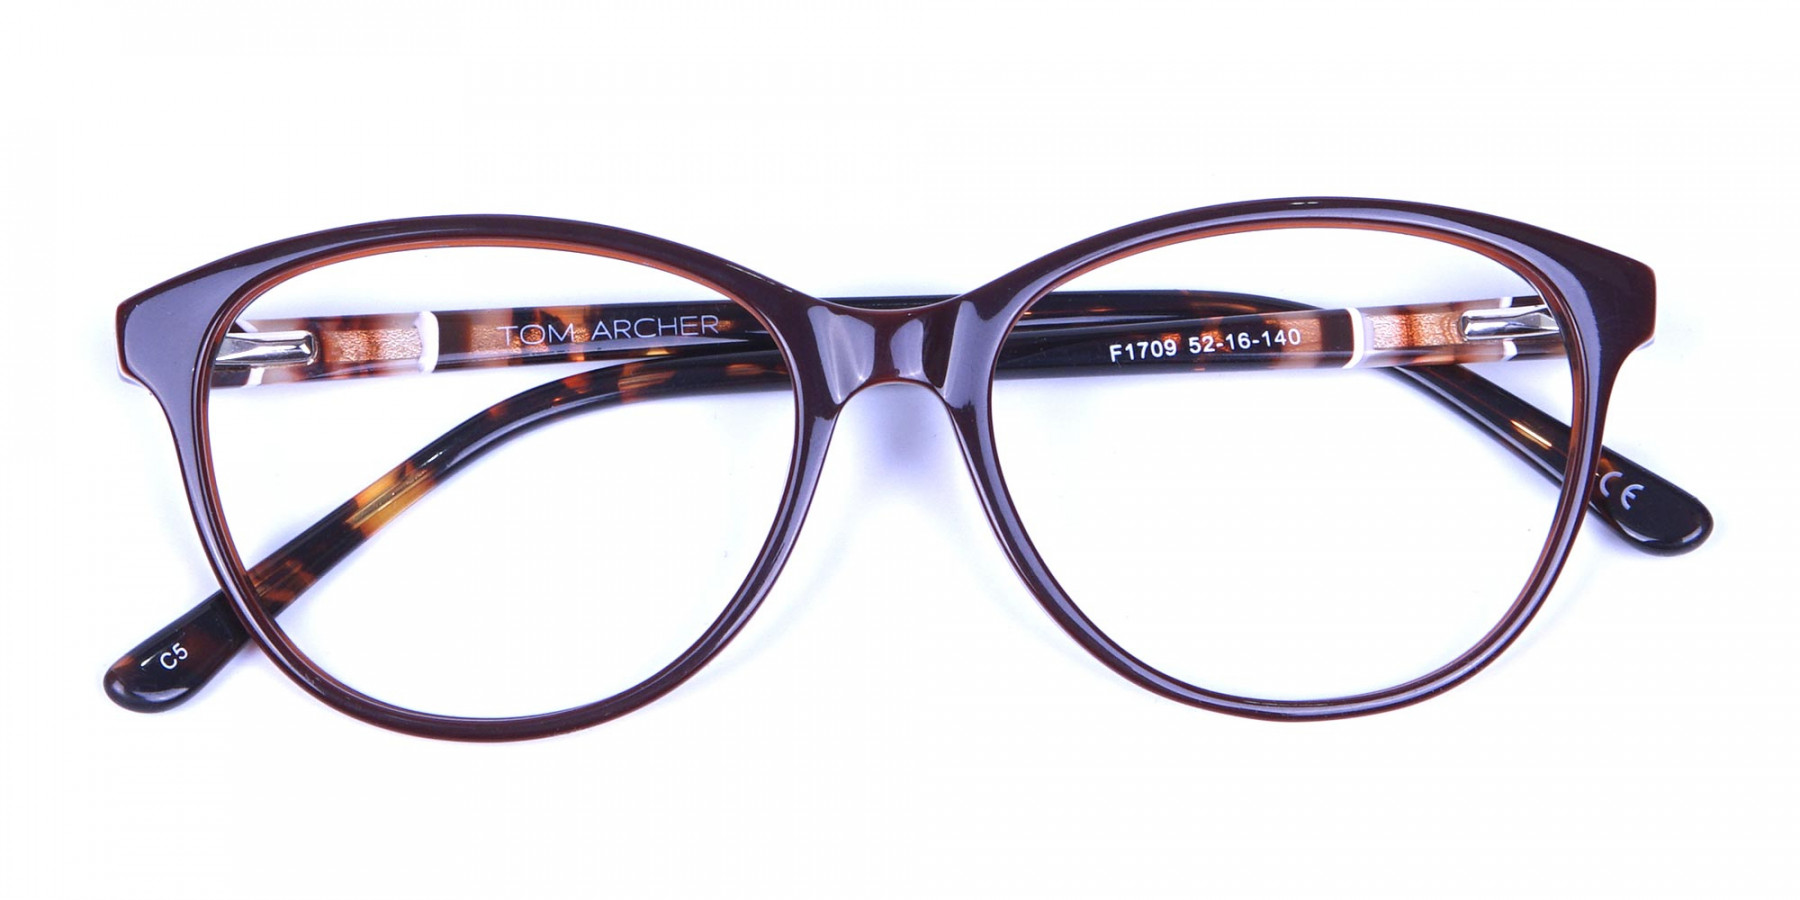 Brown and Tortoiseshell Pattern Glasses